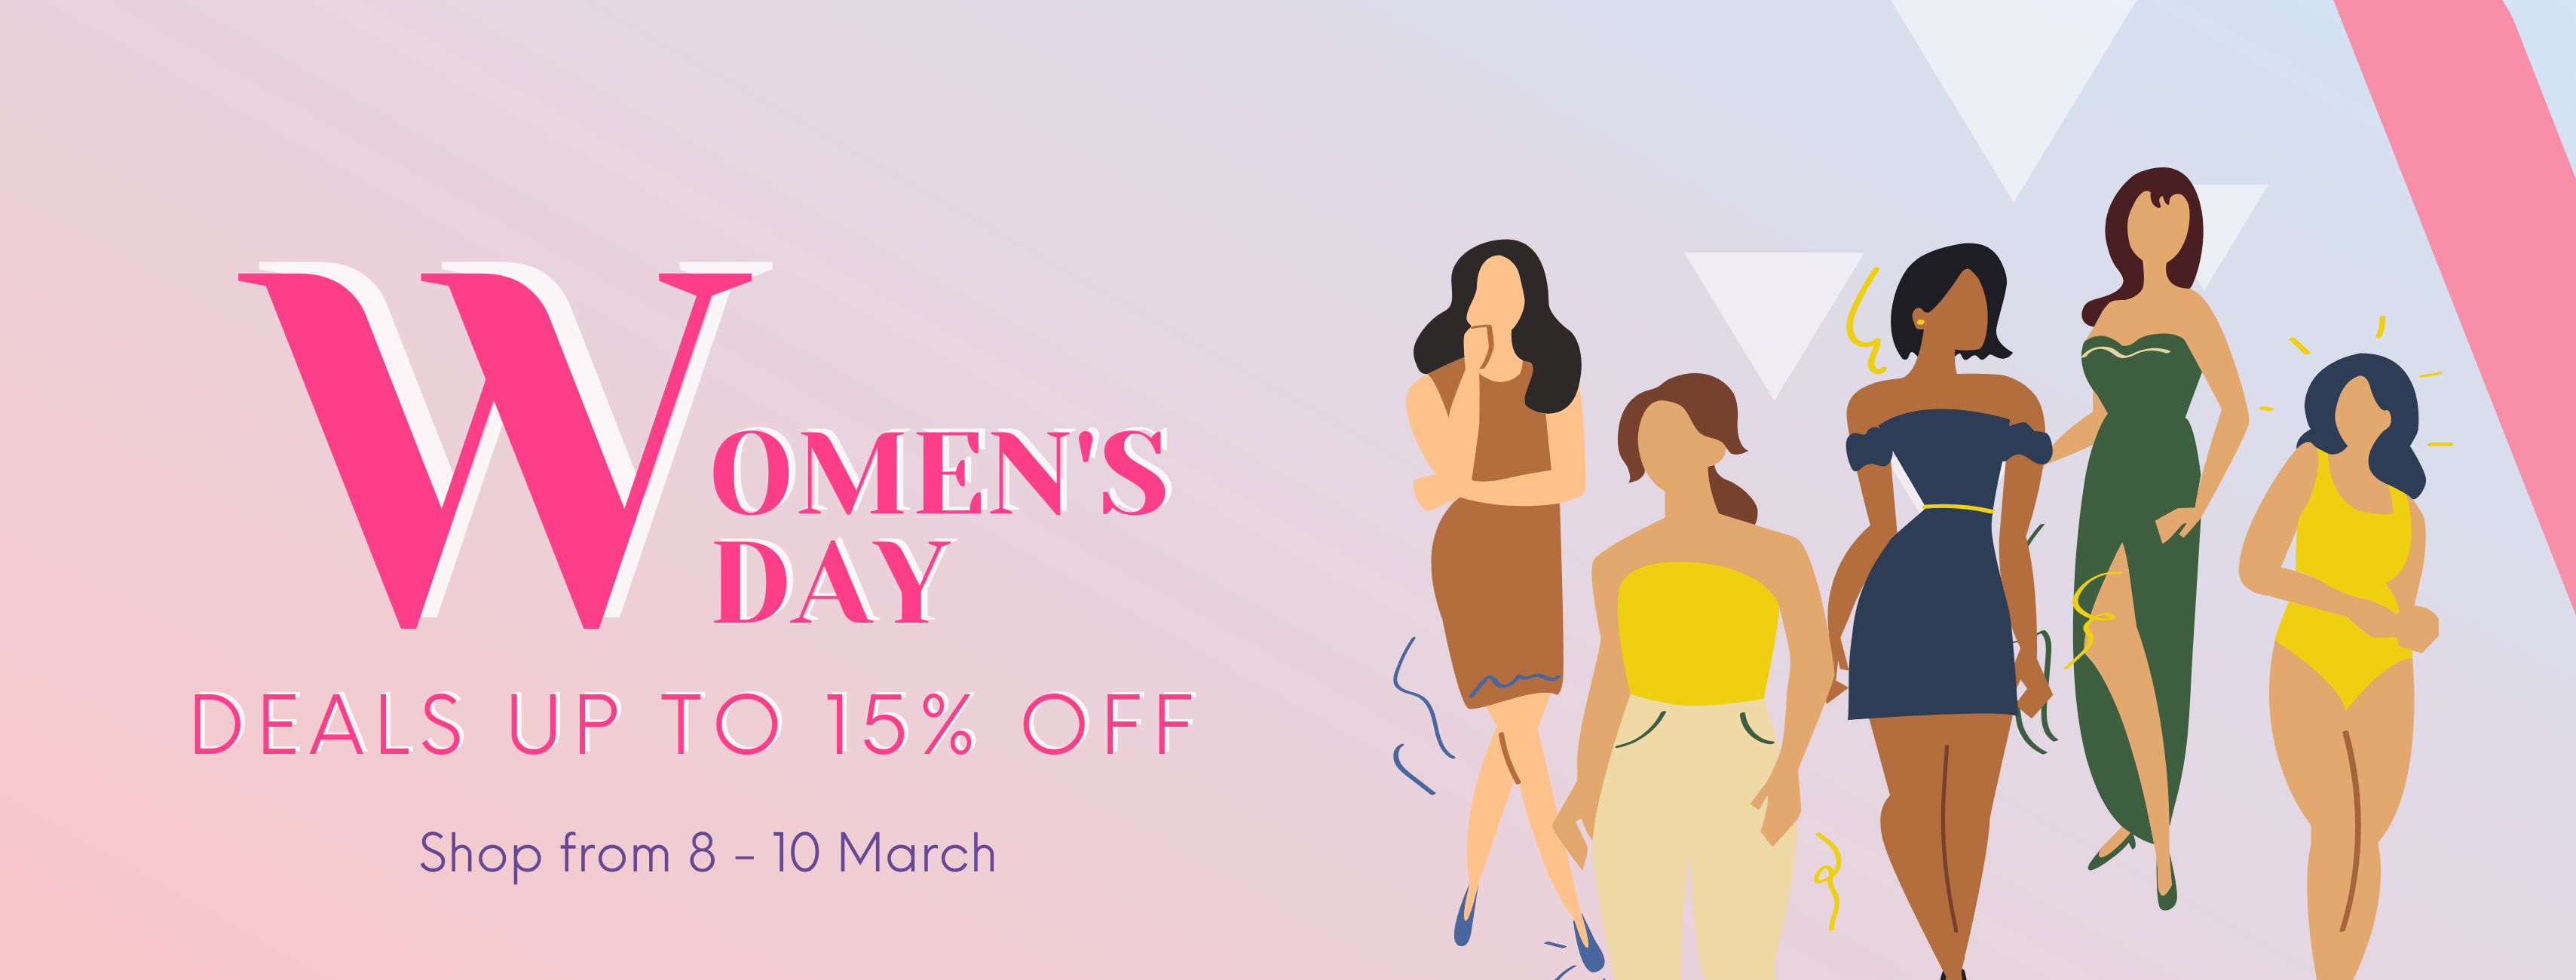 Women's Day 2021 Deal Singapore